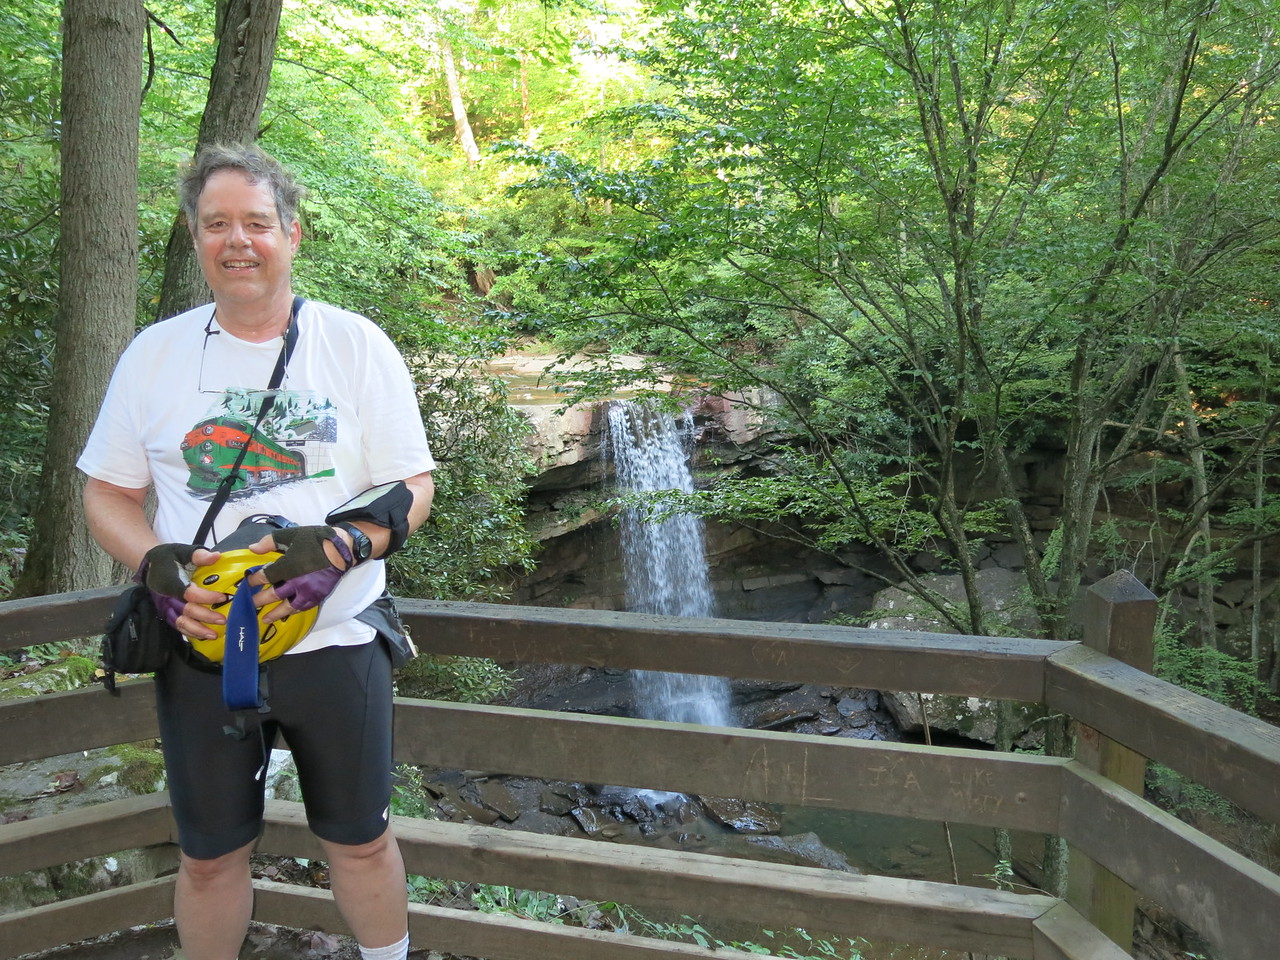 Martin in front of Cucumber Falls